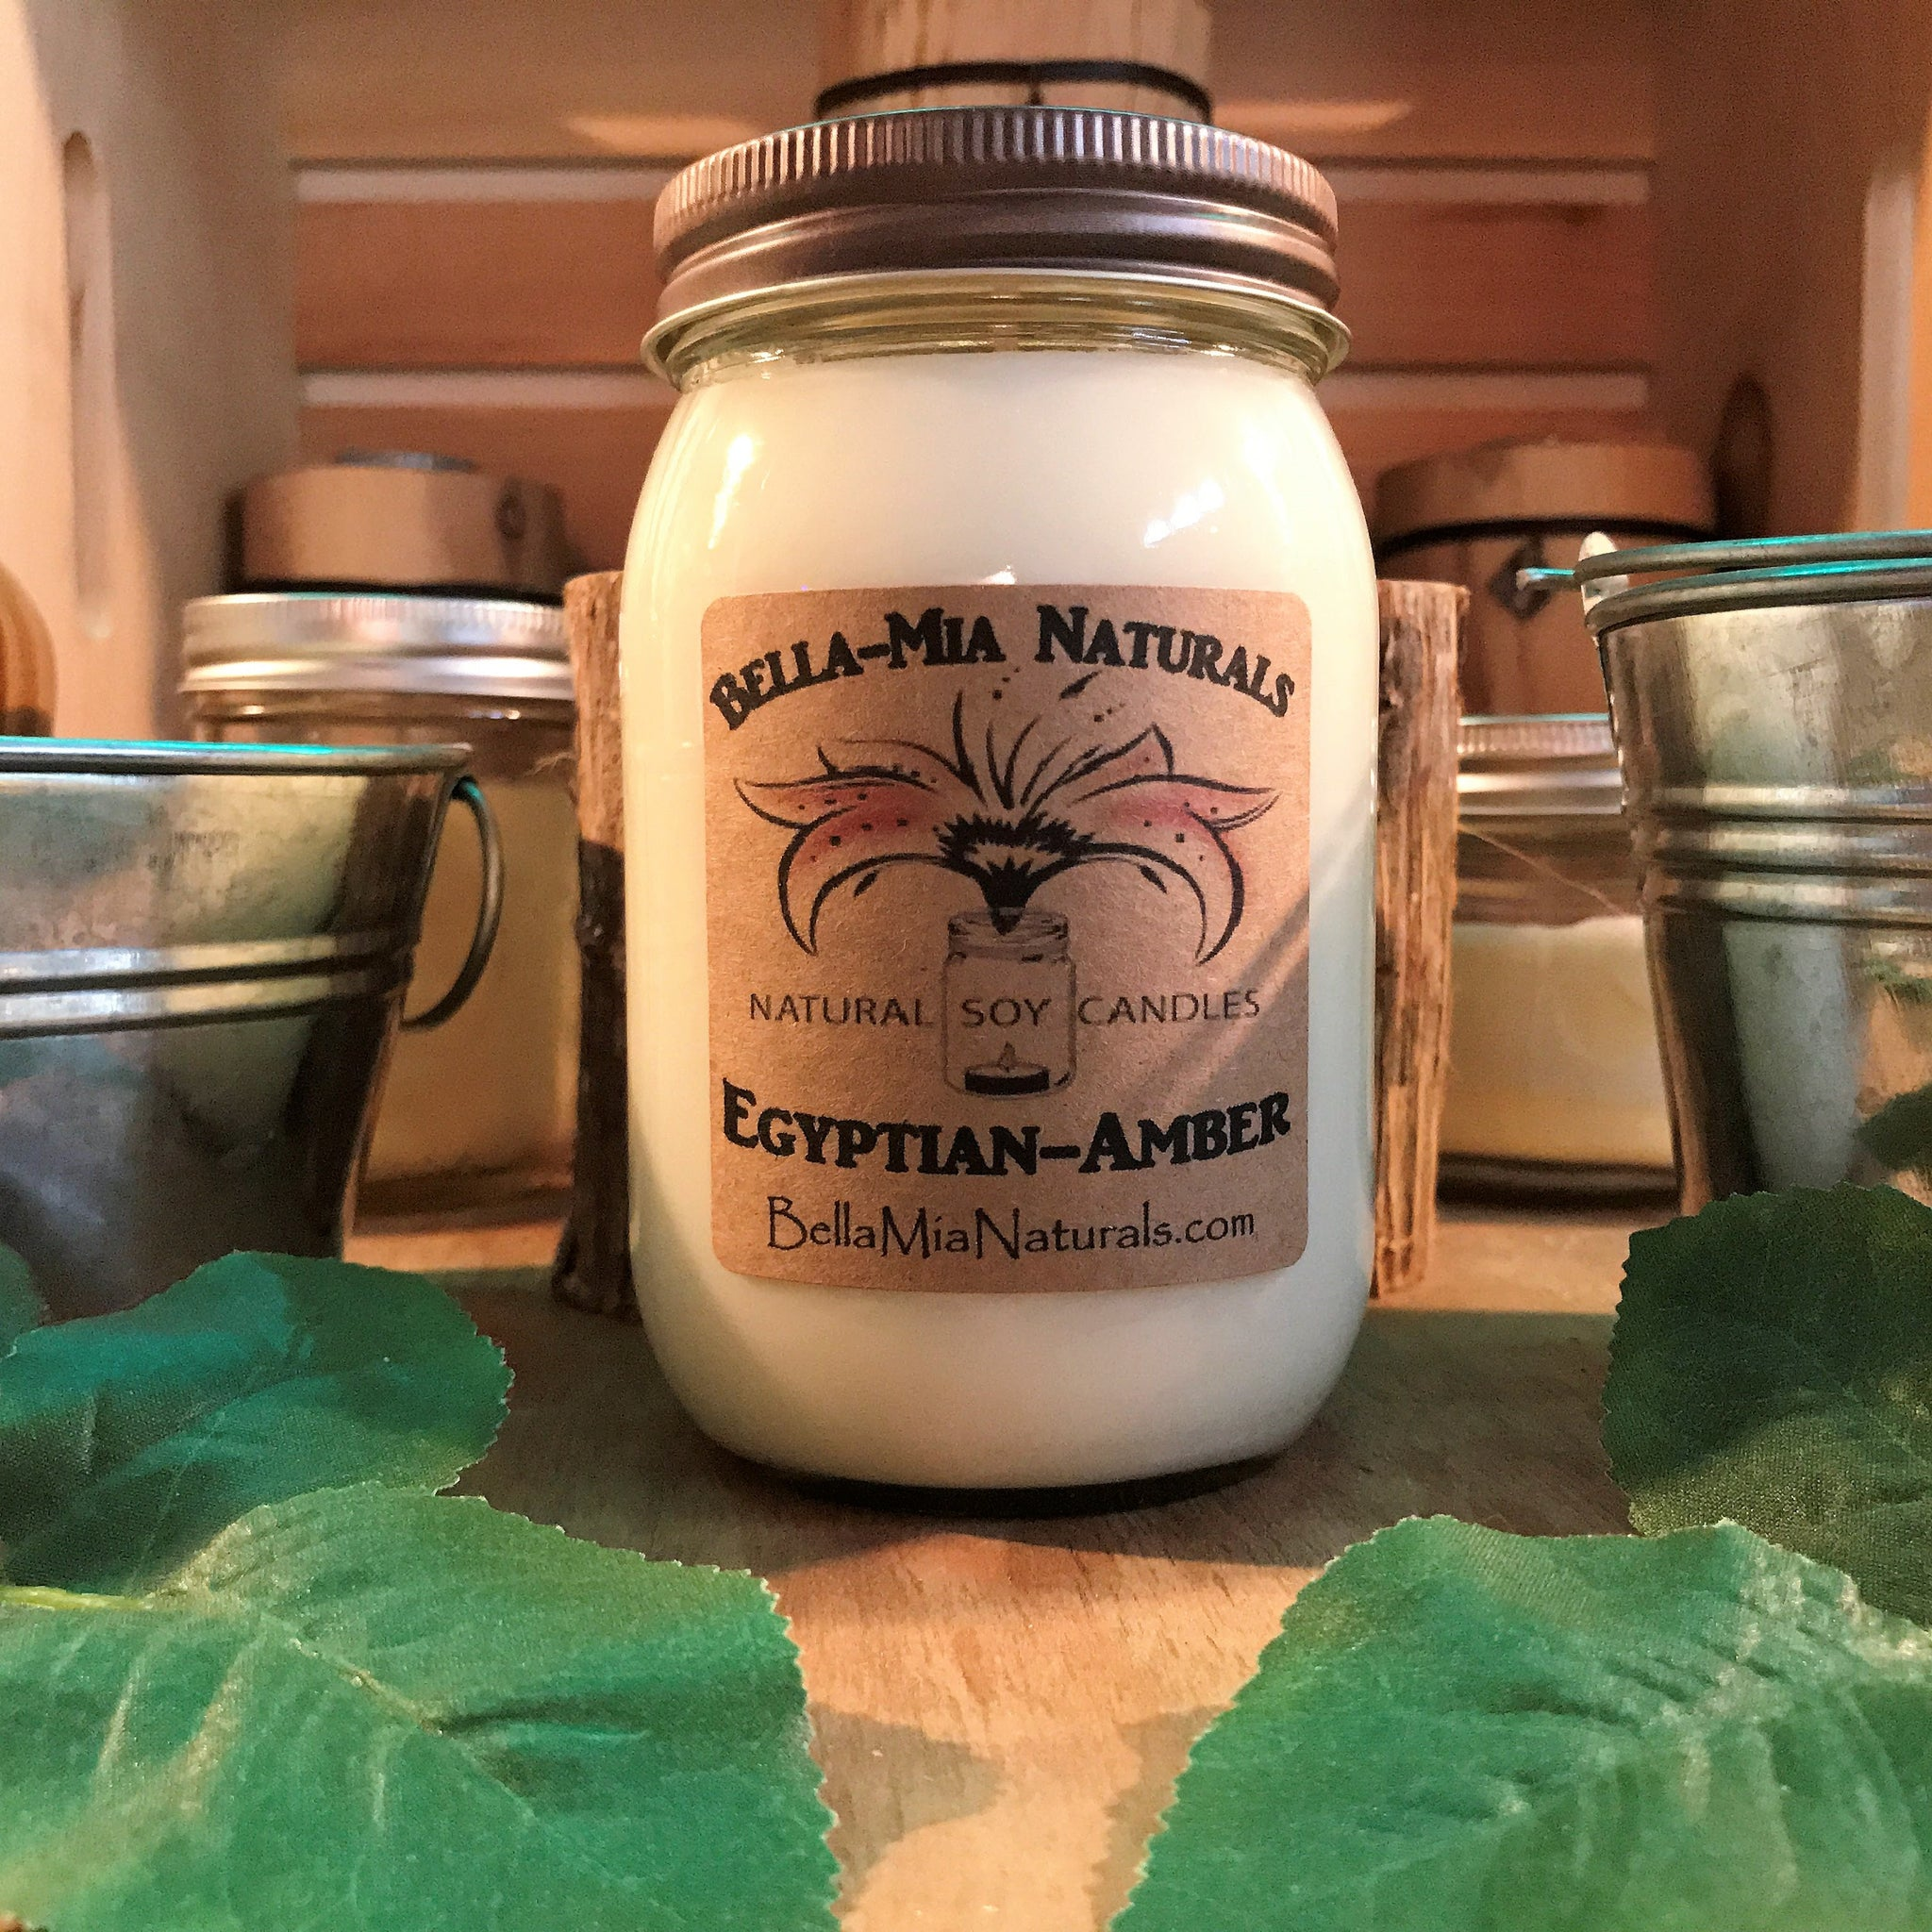 Egyptian-Amber Natural Hand Poured Soy Candles & Melts